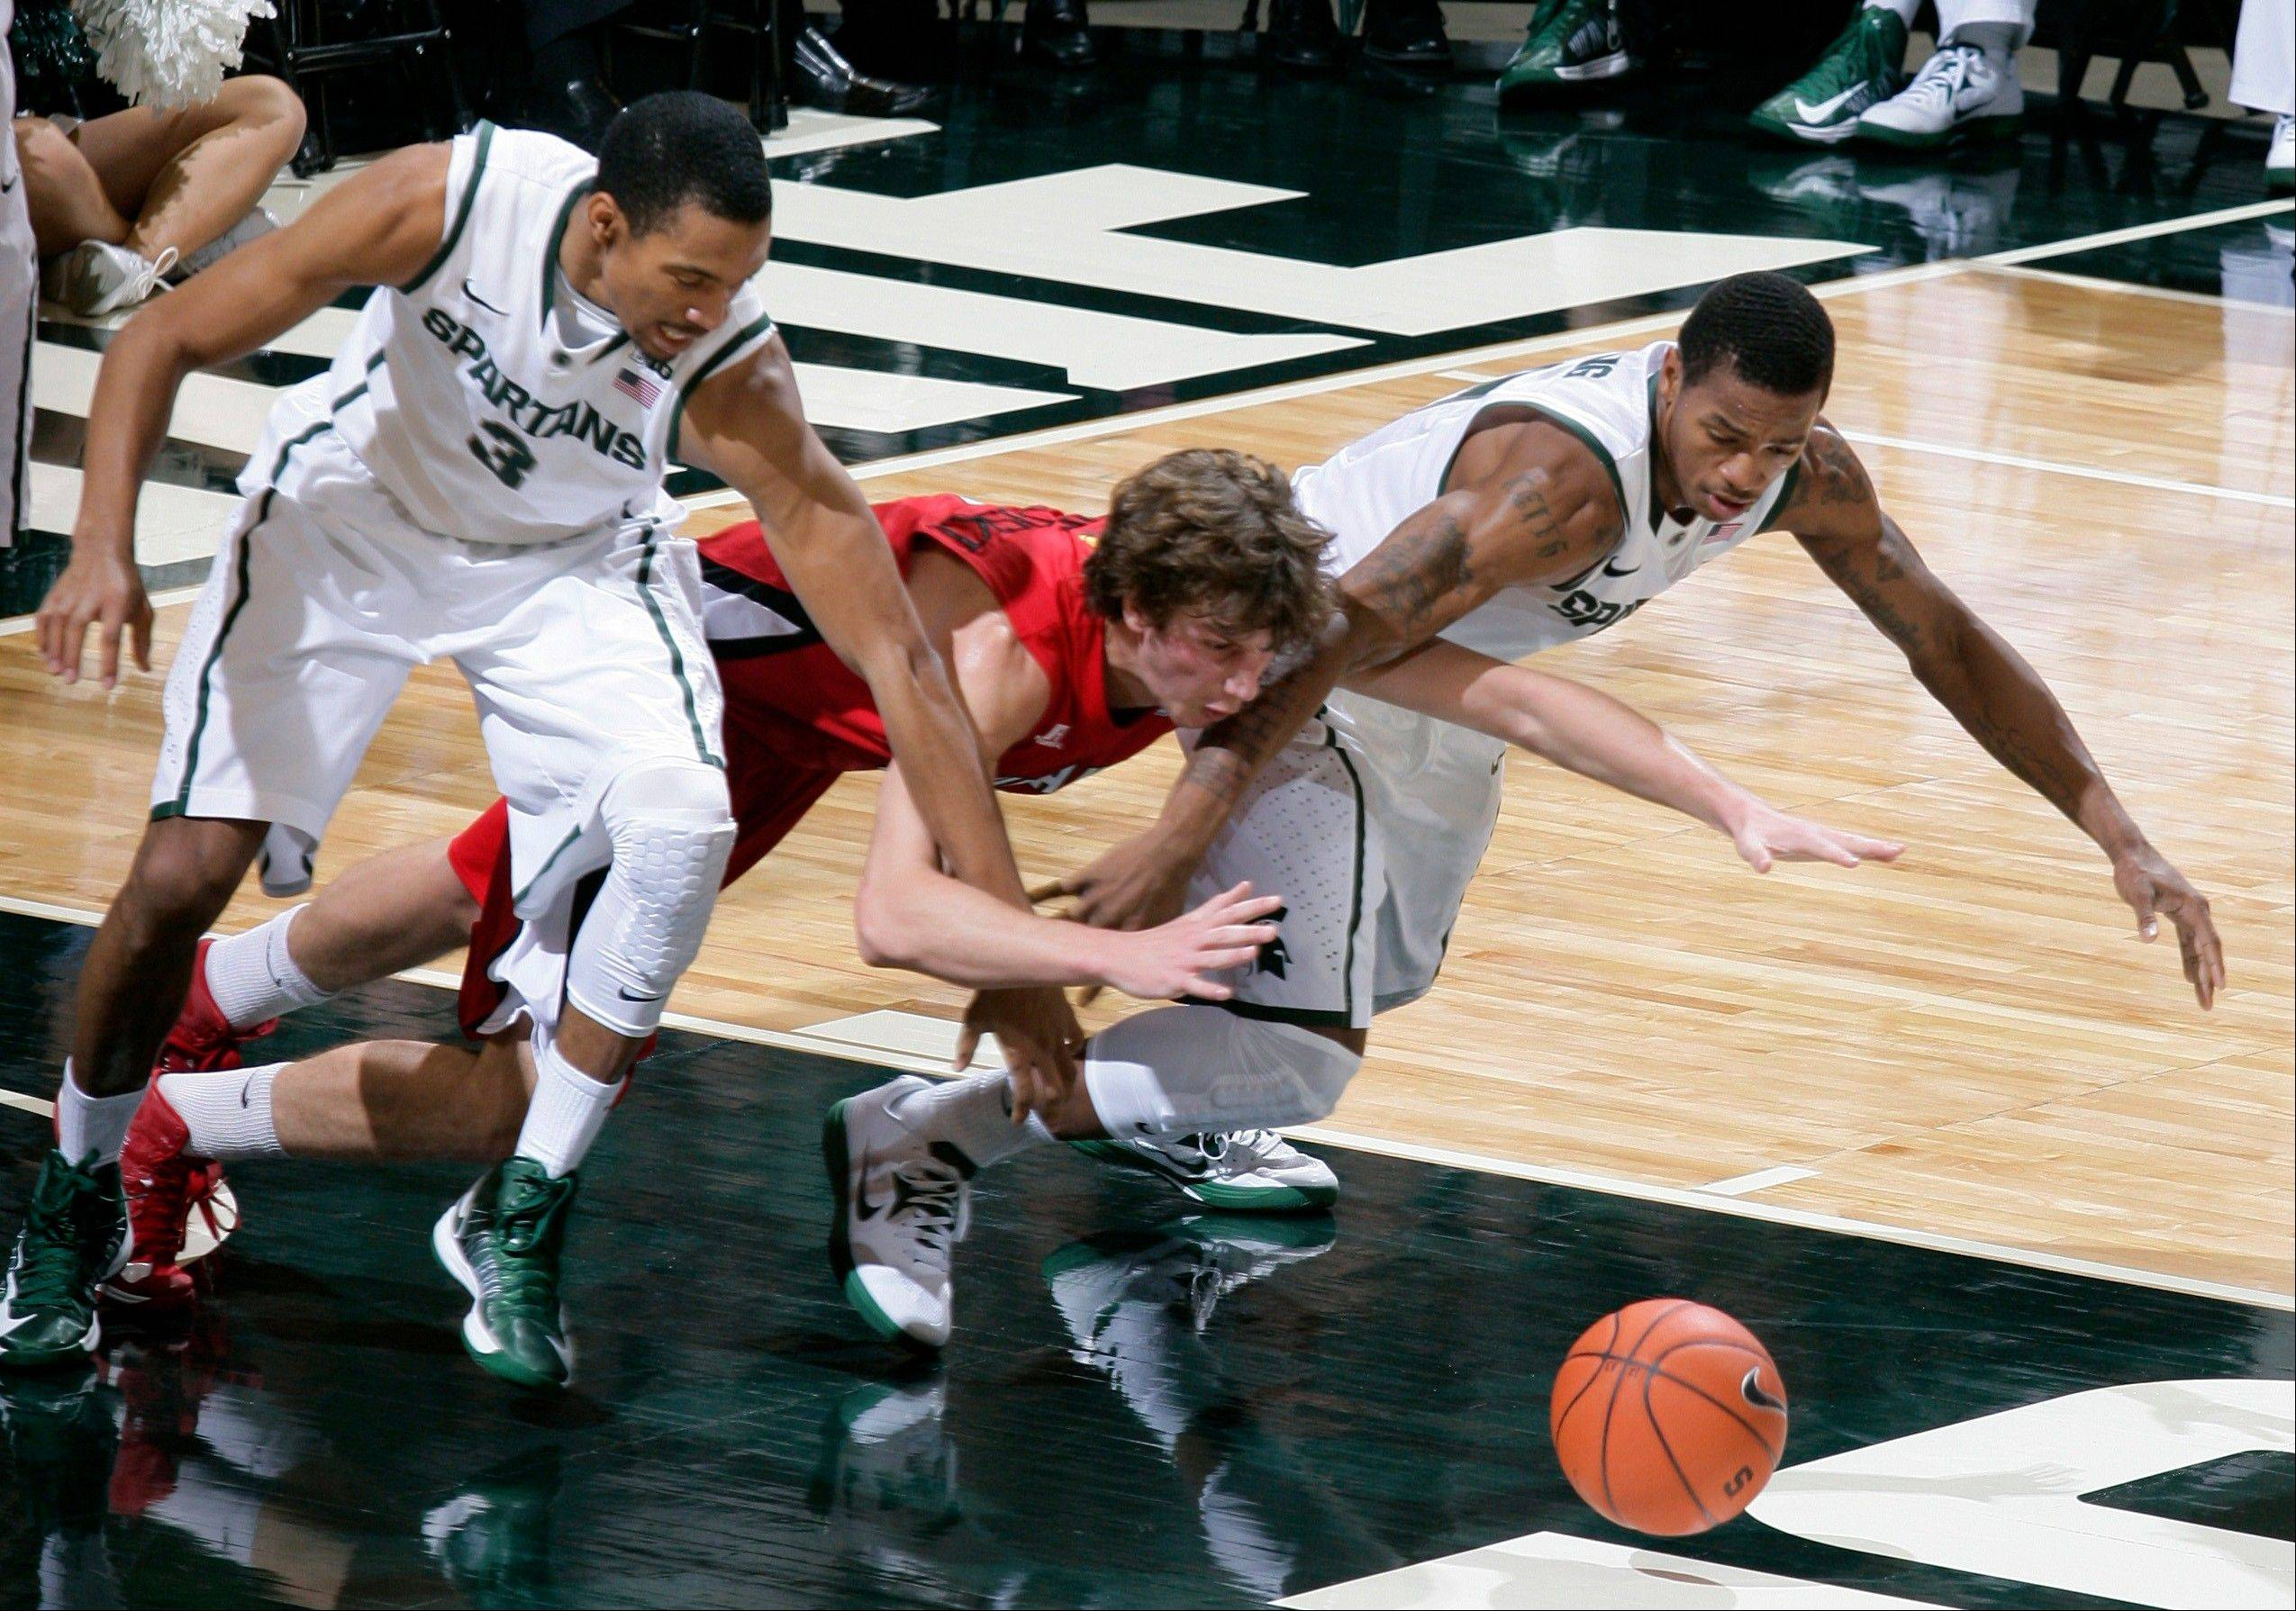 Michigan State's Brandan Kearney, left, Louisiana Lafayette's Steven Wronkoski, center, and Michigan State's Keith Appling dive for a loose ball during the first half of Sunday's game in East Lansing, Mich.